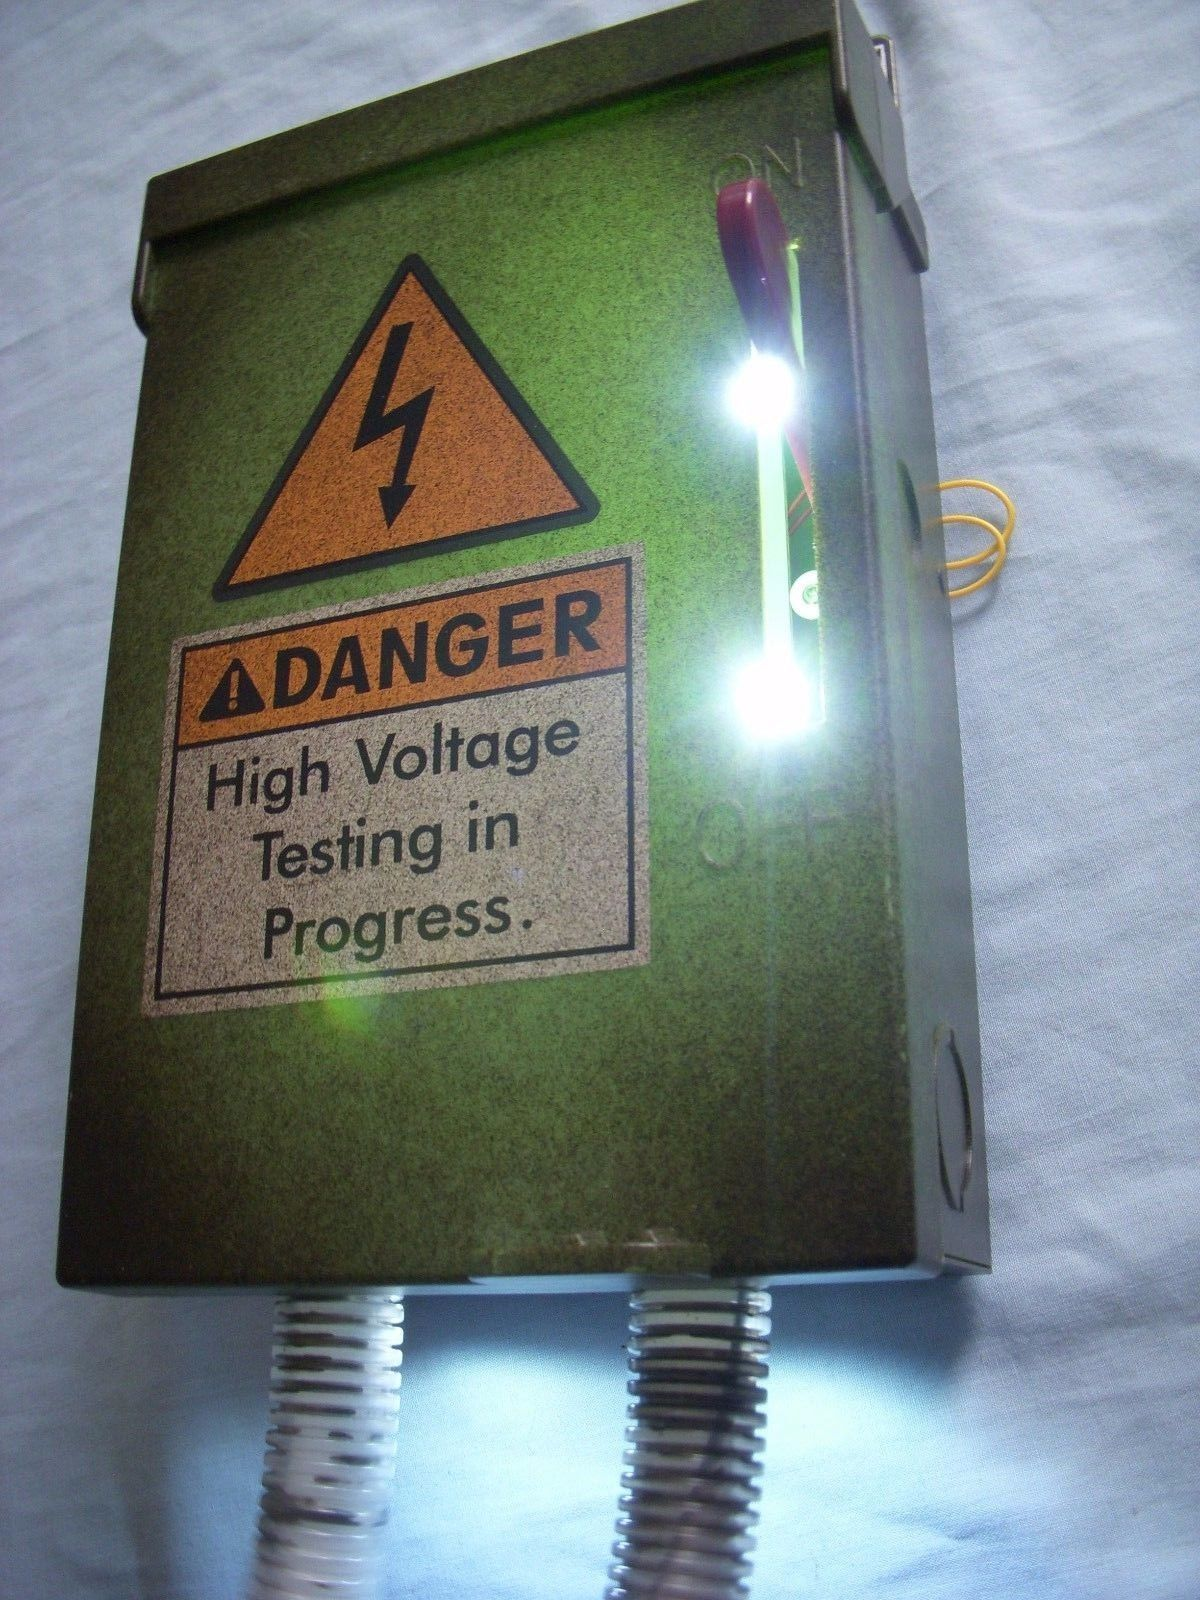 109ce1015ce1c16ef47721cf5f2cc0af haunted house prop animated high voltage fuse box realistic motion